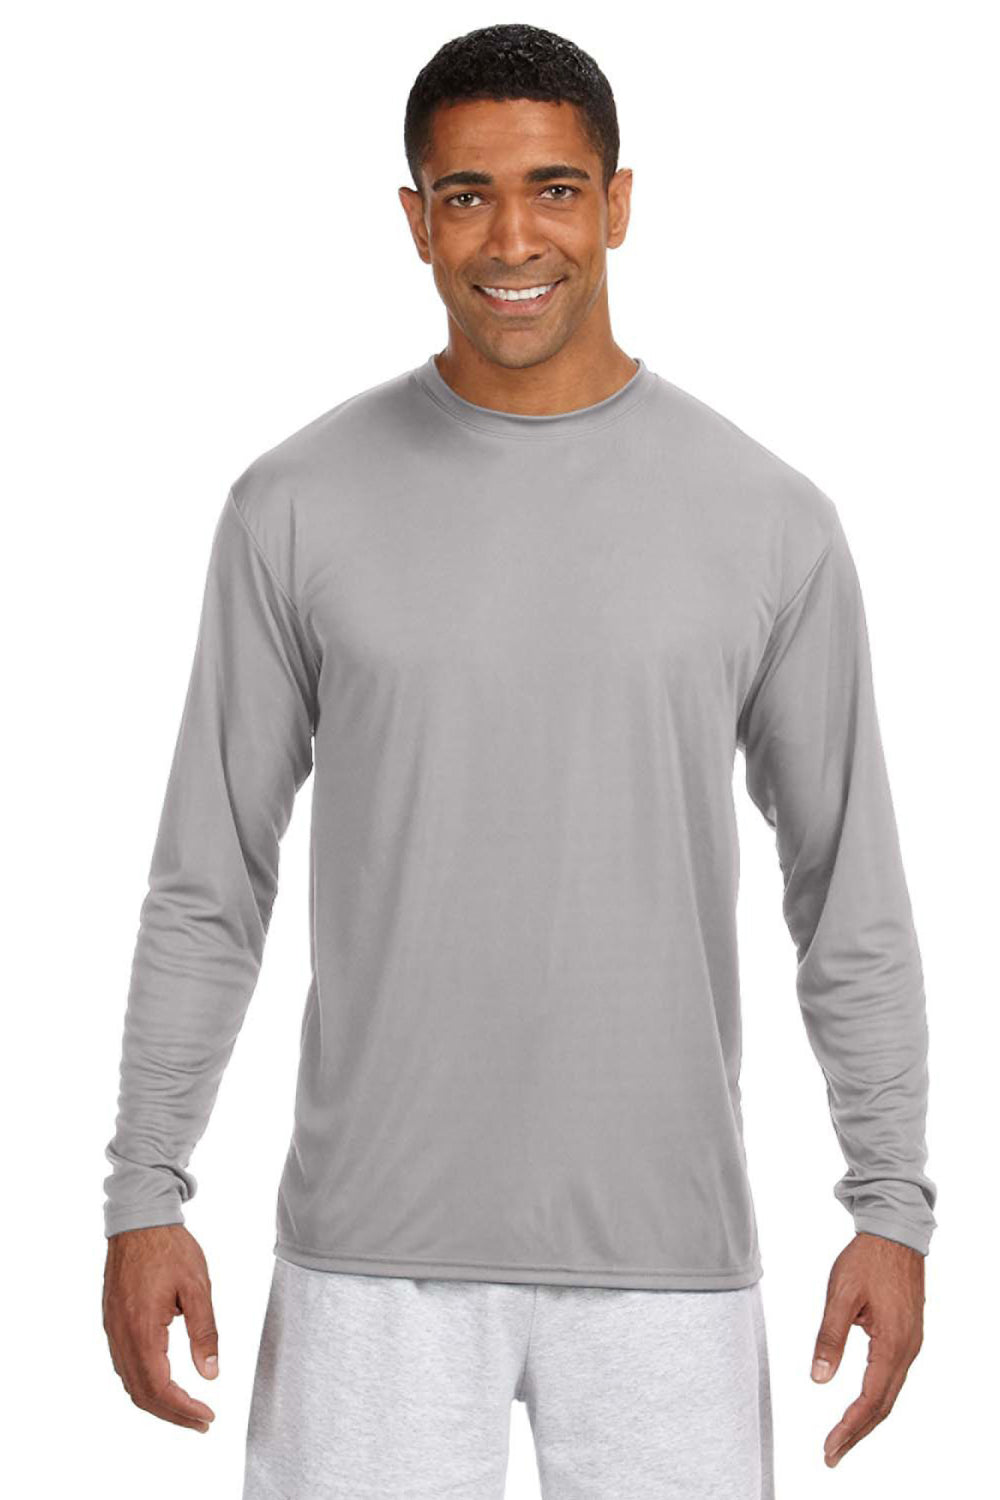 A4 N3165 Mens Cooling Performance Moisture Wicking Long Sleeve Crewneck T-Shirt Silver Grey Front